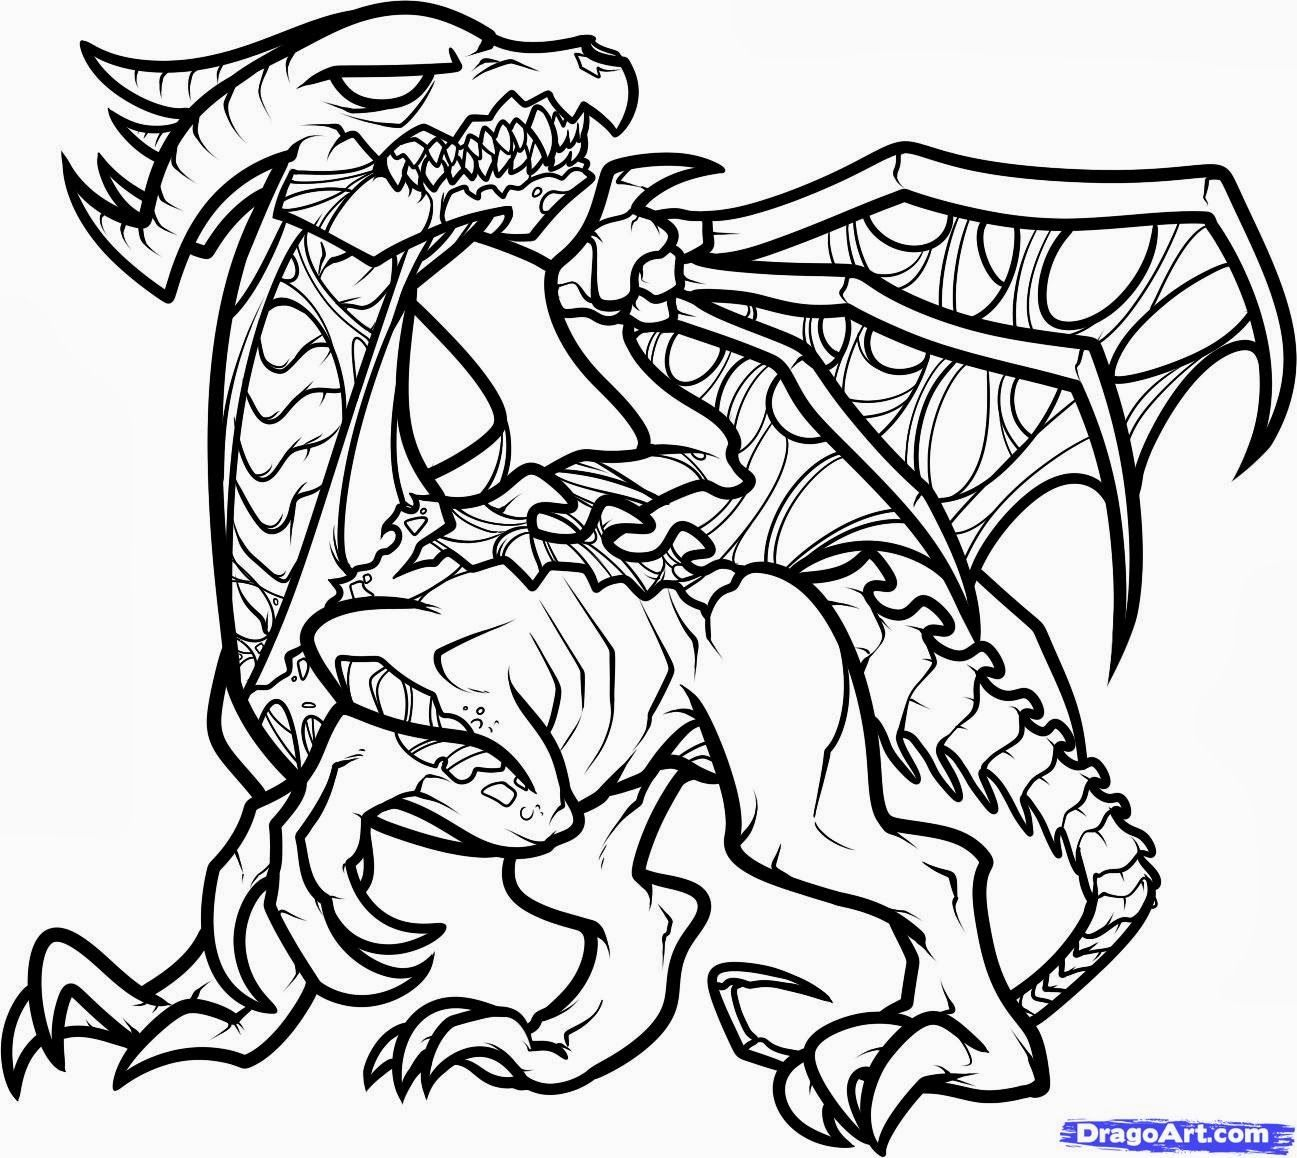 1297x1158 Incredible How To Draw A Ender Dragon Roadrunnersae Mesmerizing